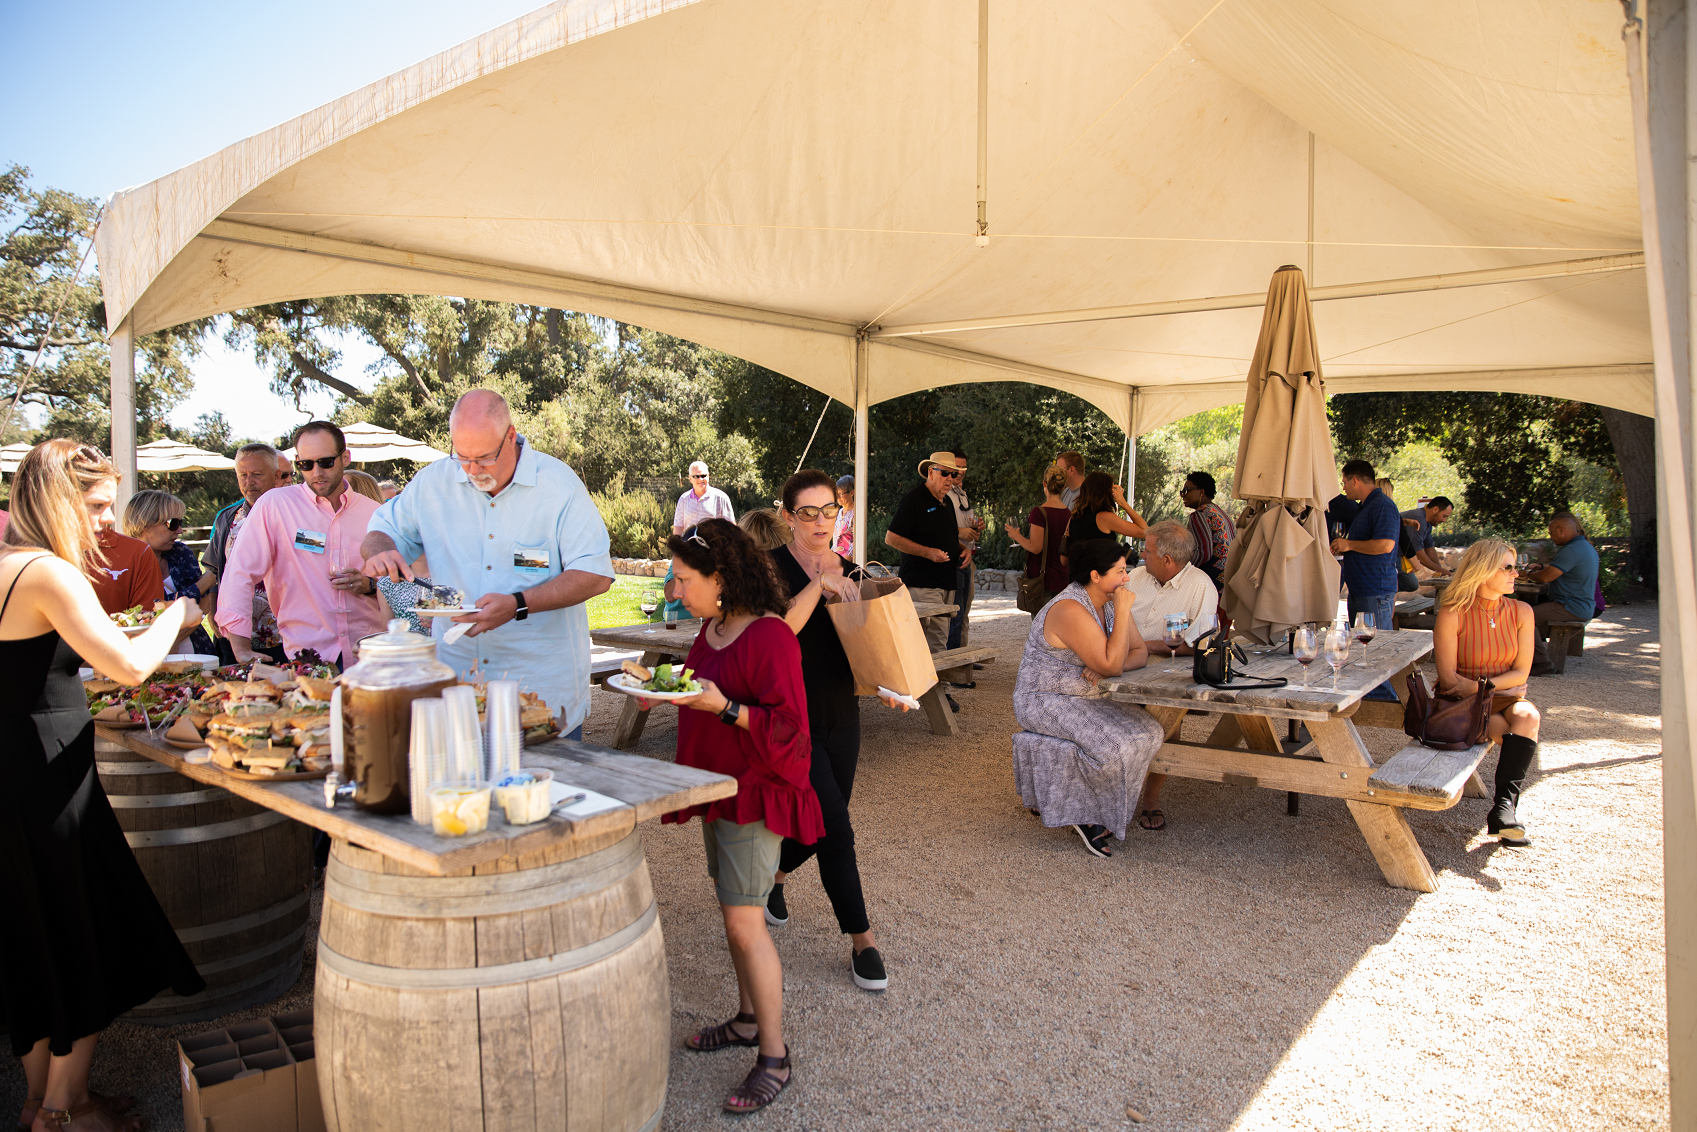 A tented area is set up with a lunch buffet and picnic tables for a group of guests to enjoy lunch and wine tasting in the shade